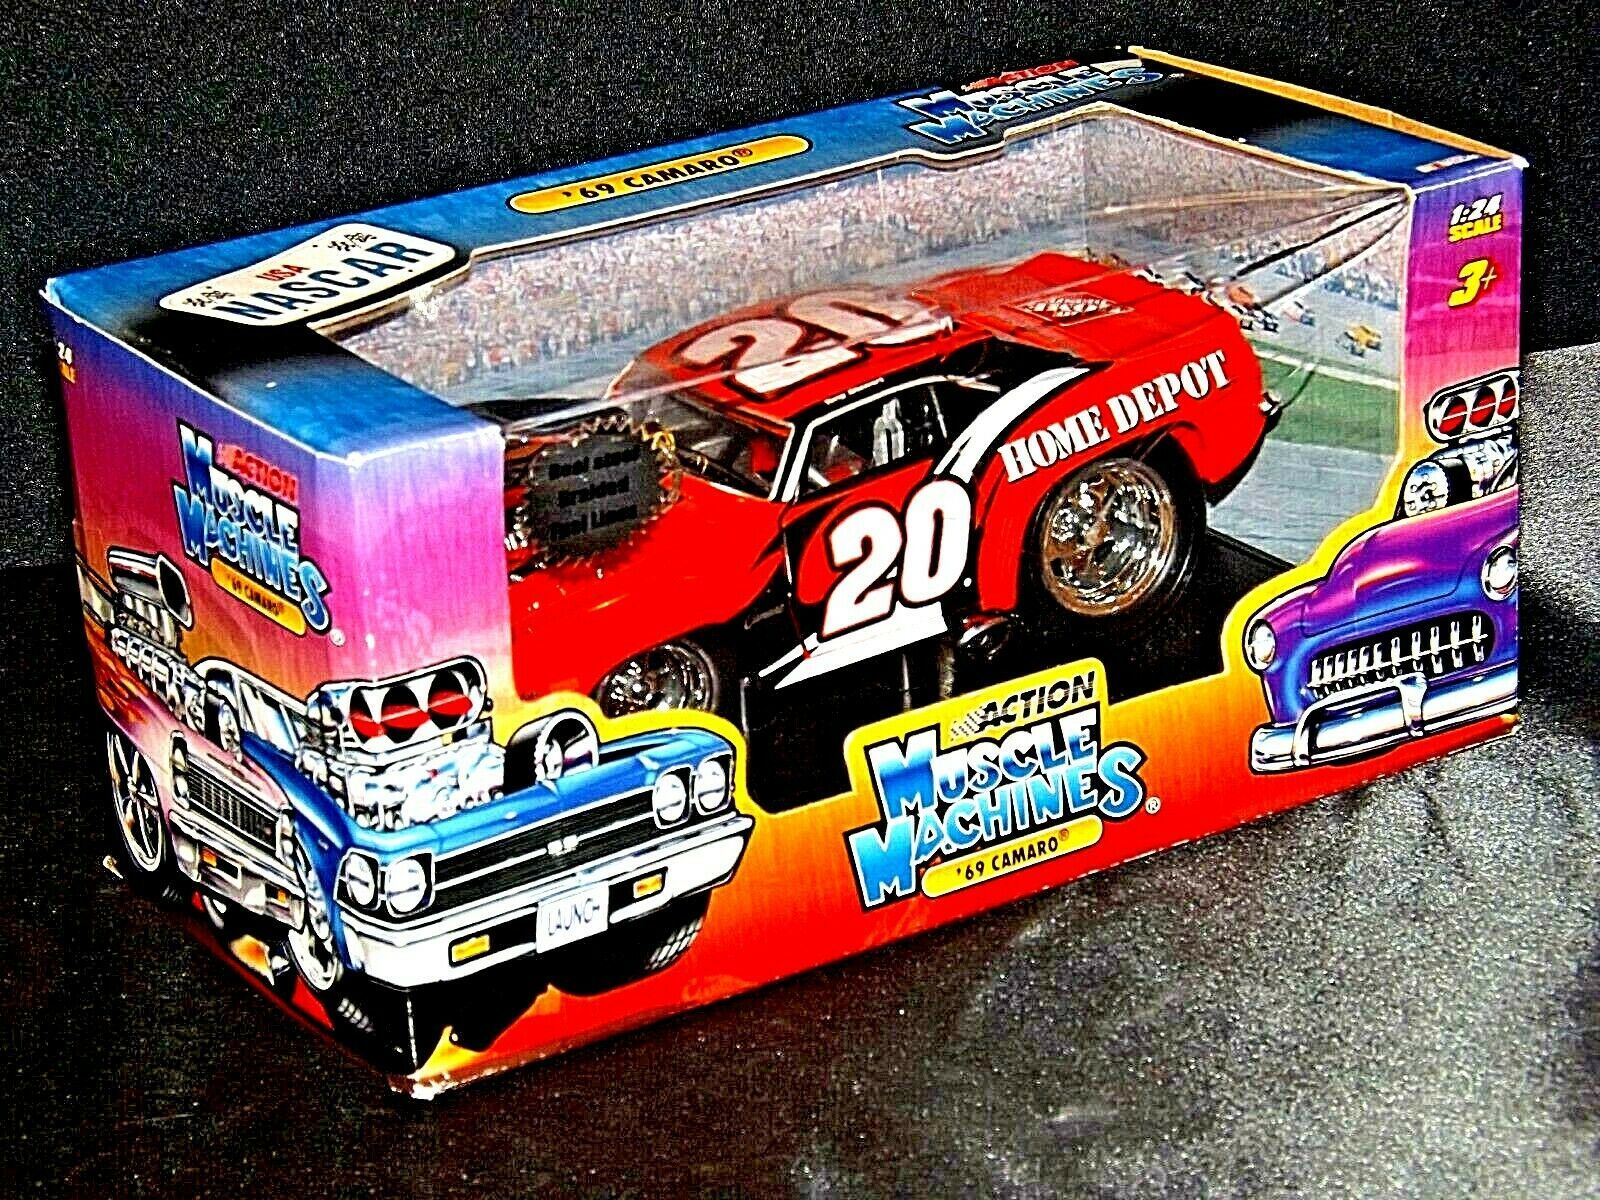 2005 NASCAR Action Camaro Muscle Machine #20 1:24 scale stock car